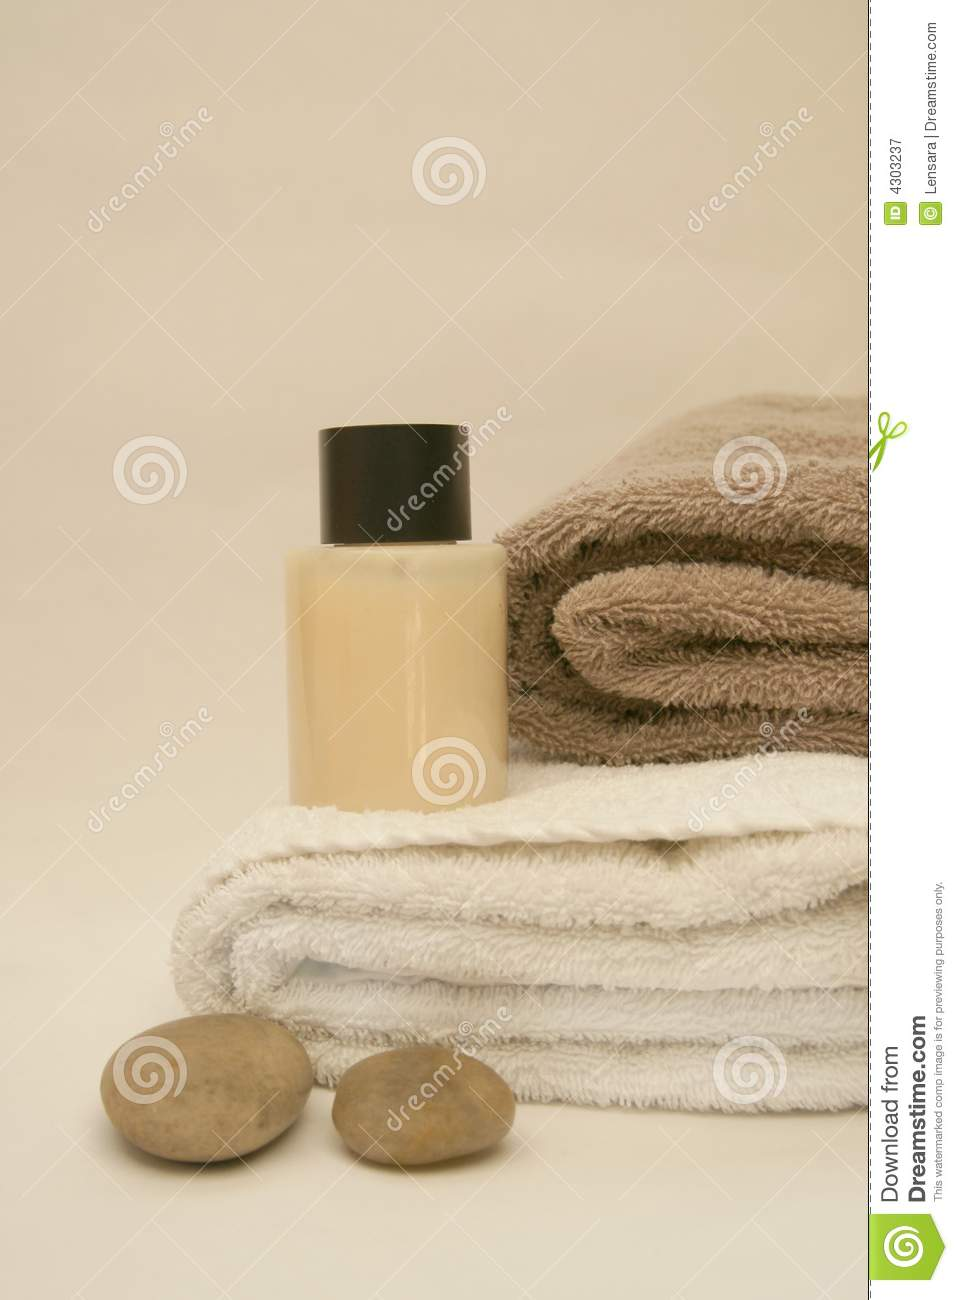 Simple la stone spa royalty free stock photography image for Salon simple